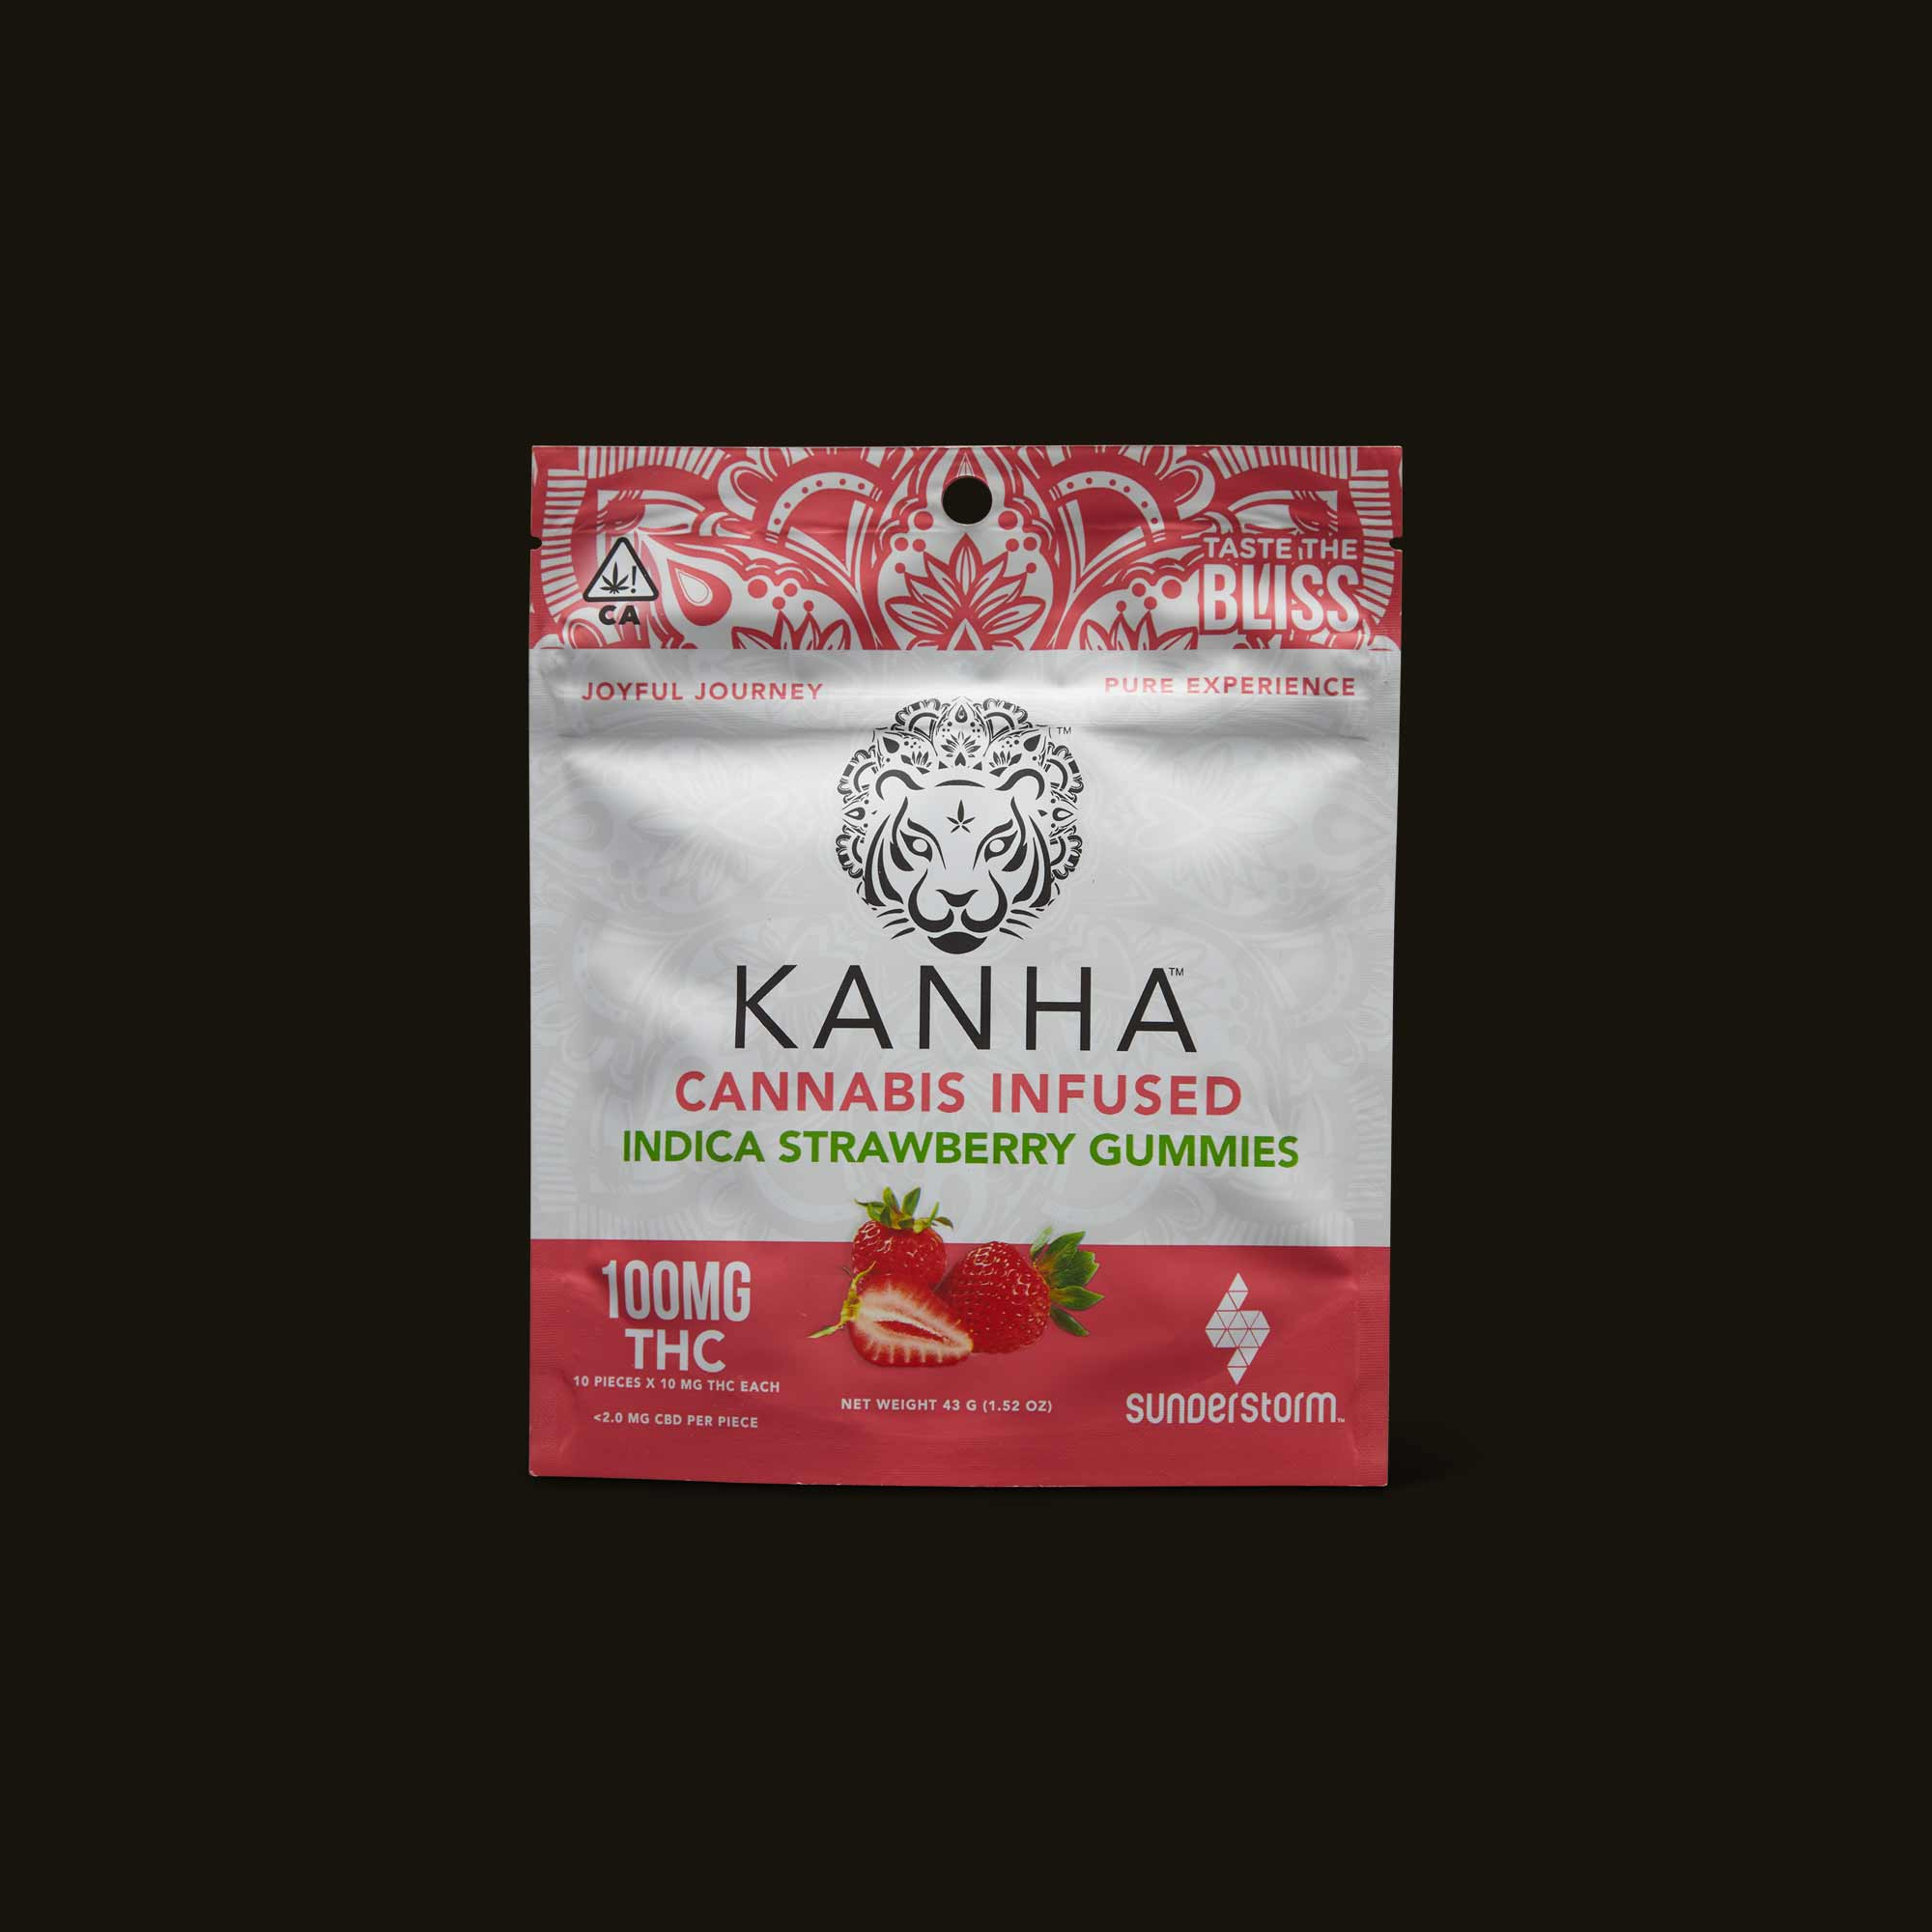 Package of Kanha Indica Strawberry Gummies